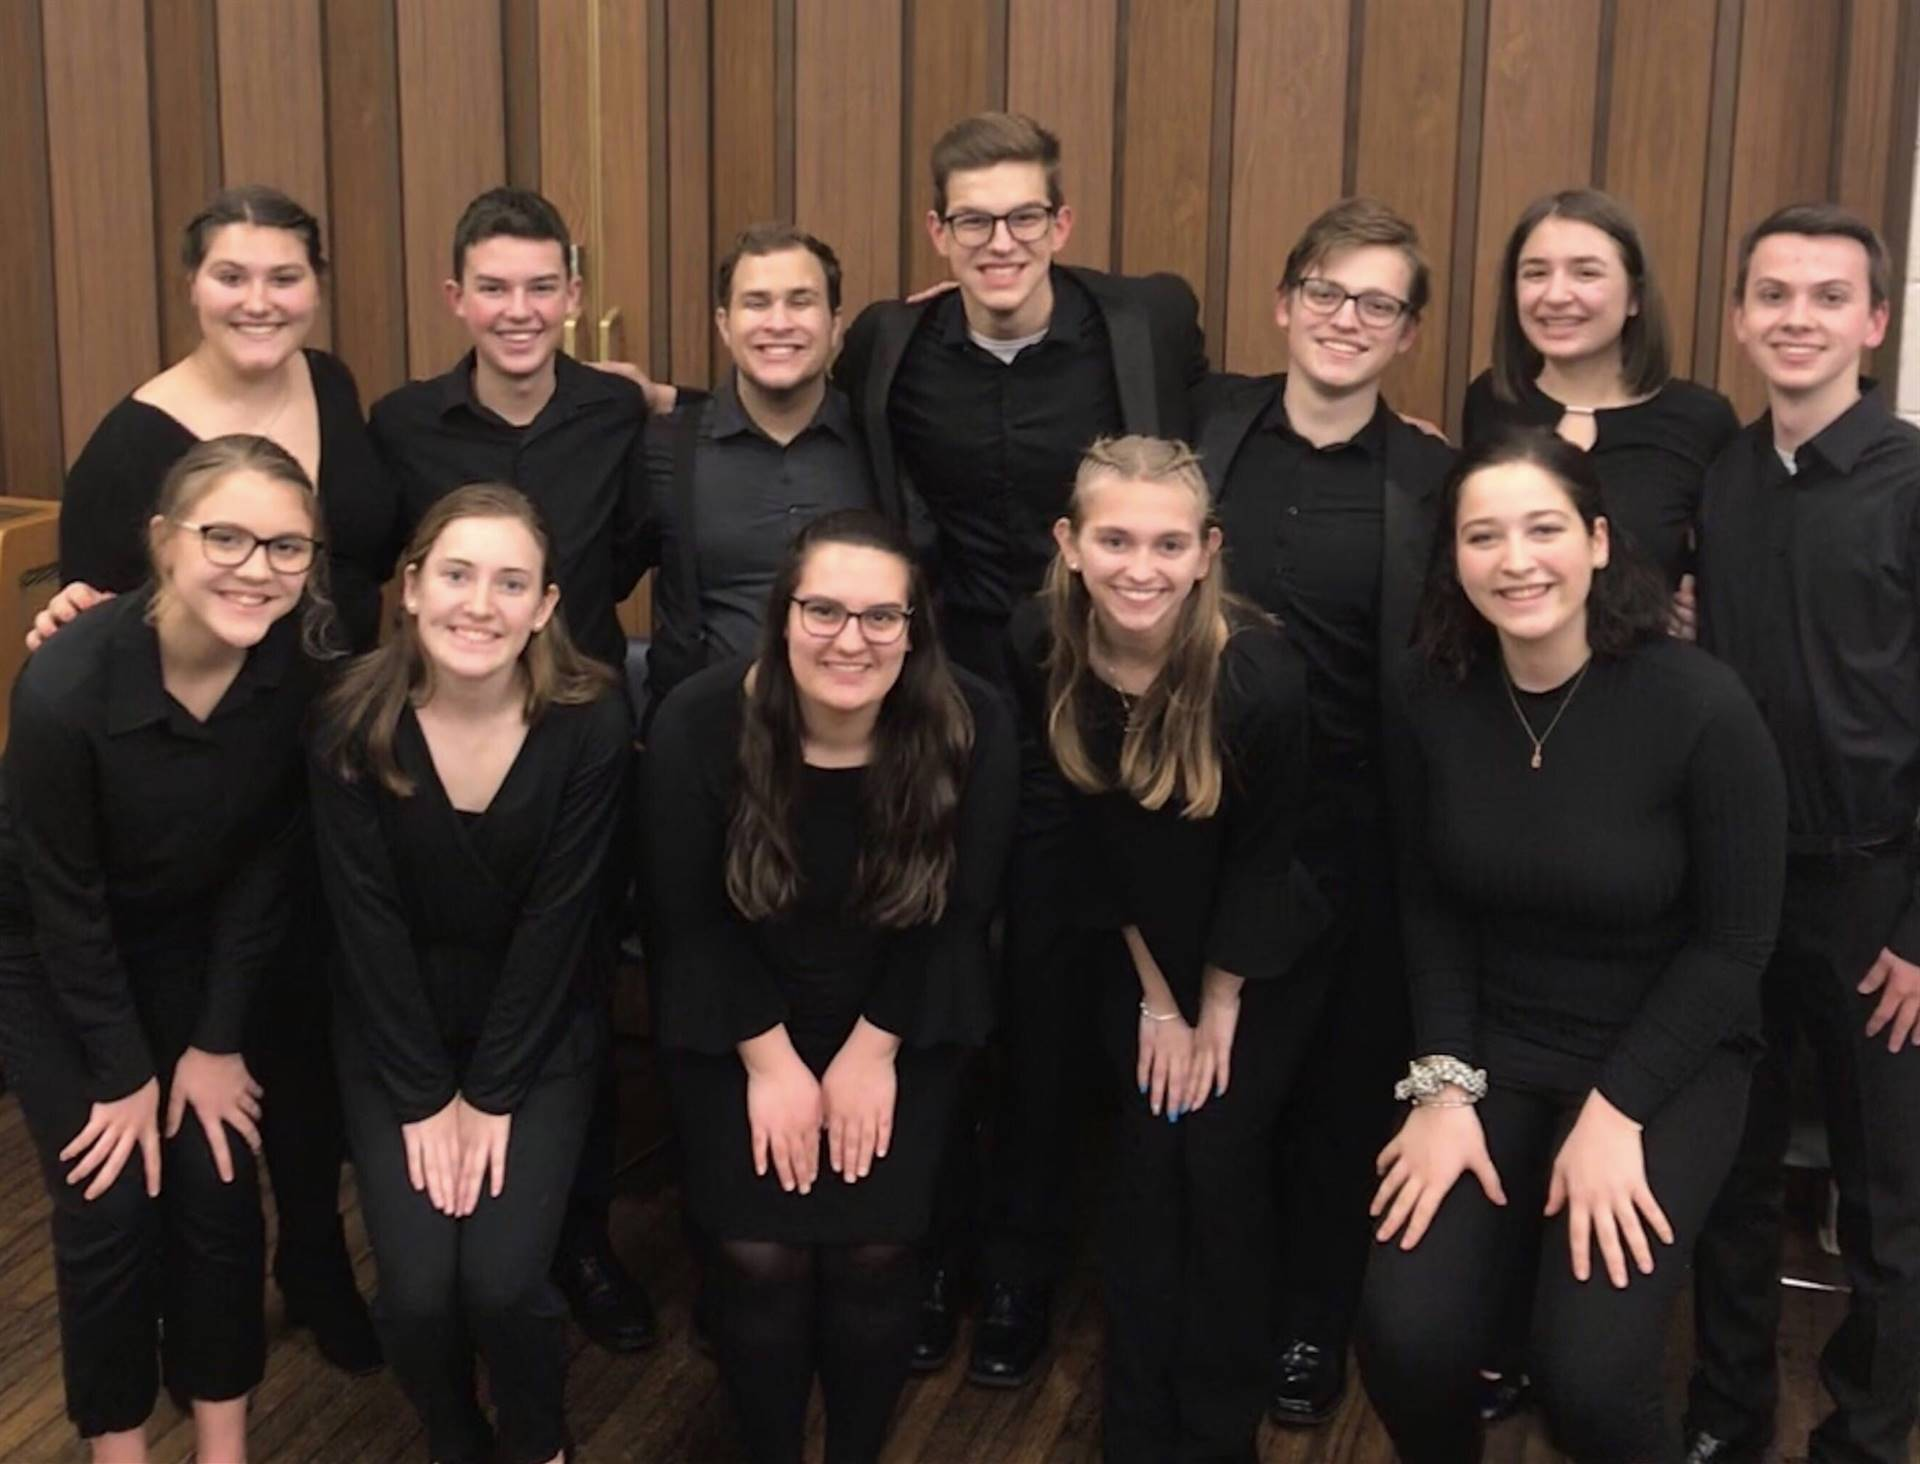 The 12 BPHS Vocalists who sang at Heinz Hall with the Pittsburgh Symphony